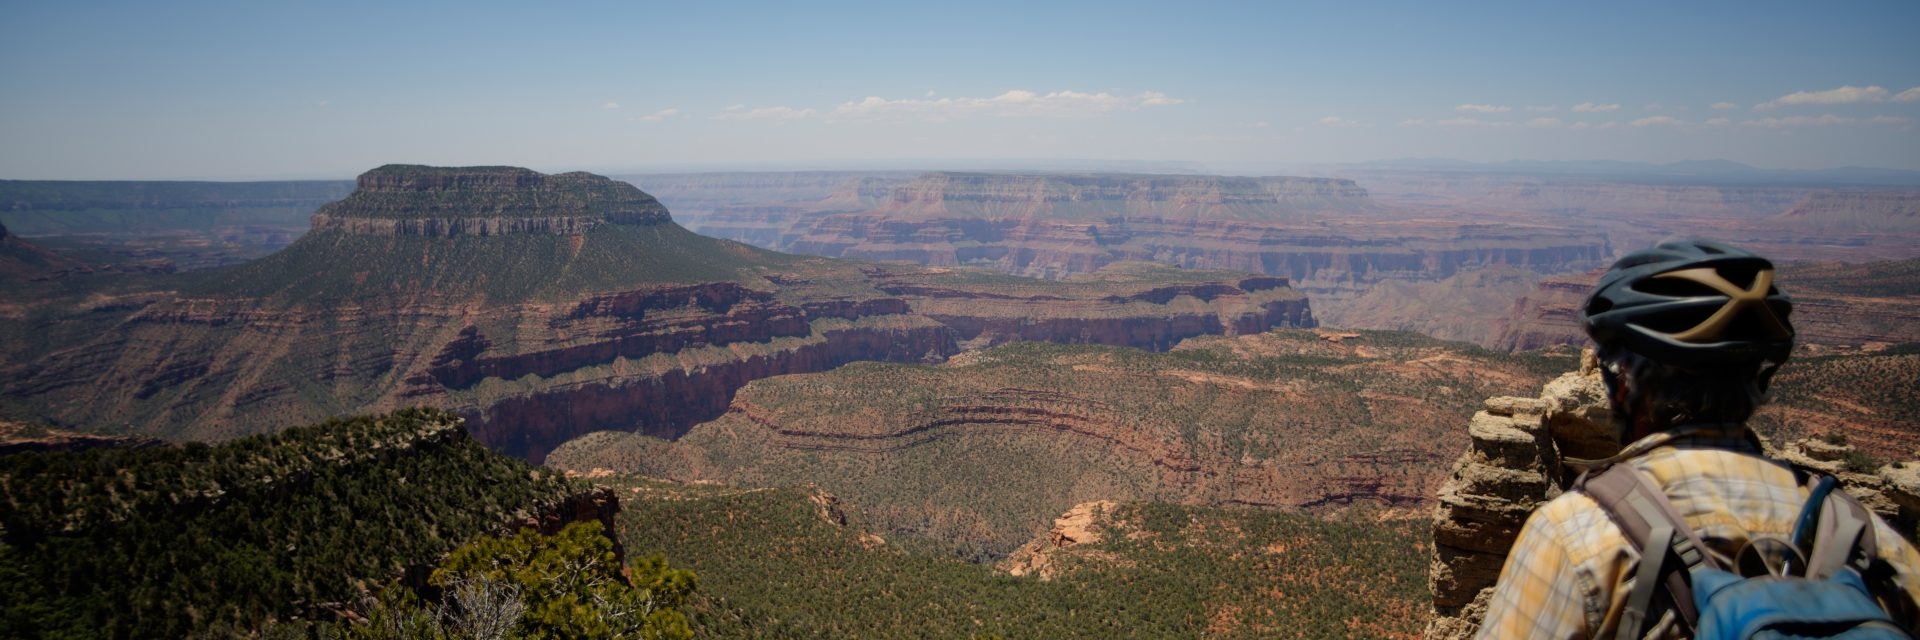 Mountain bikers stop at Fence Point, North Rim of the Grand Canyon on guided tour